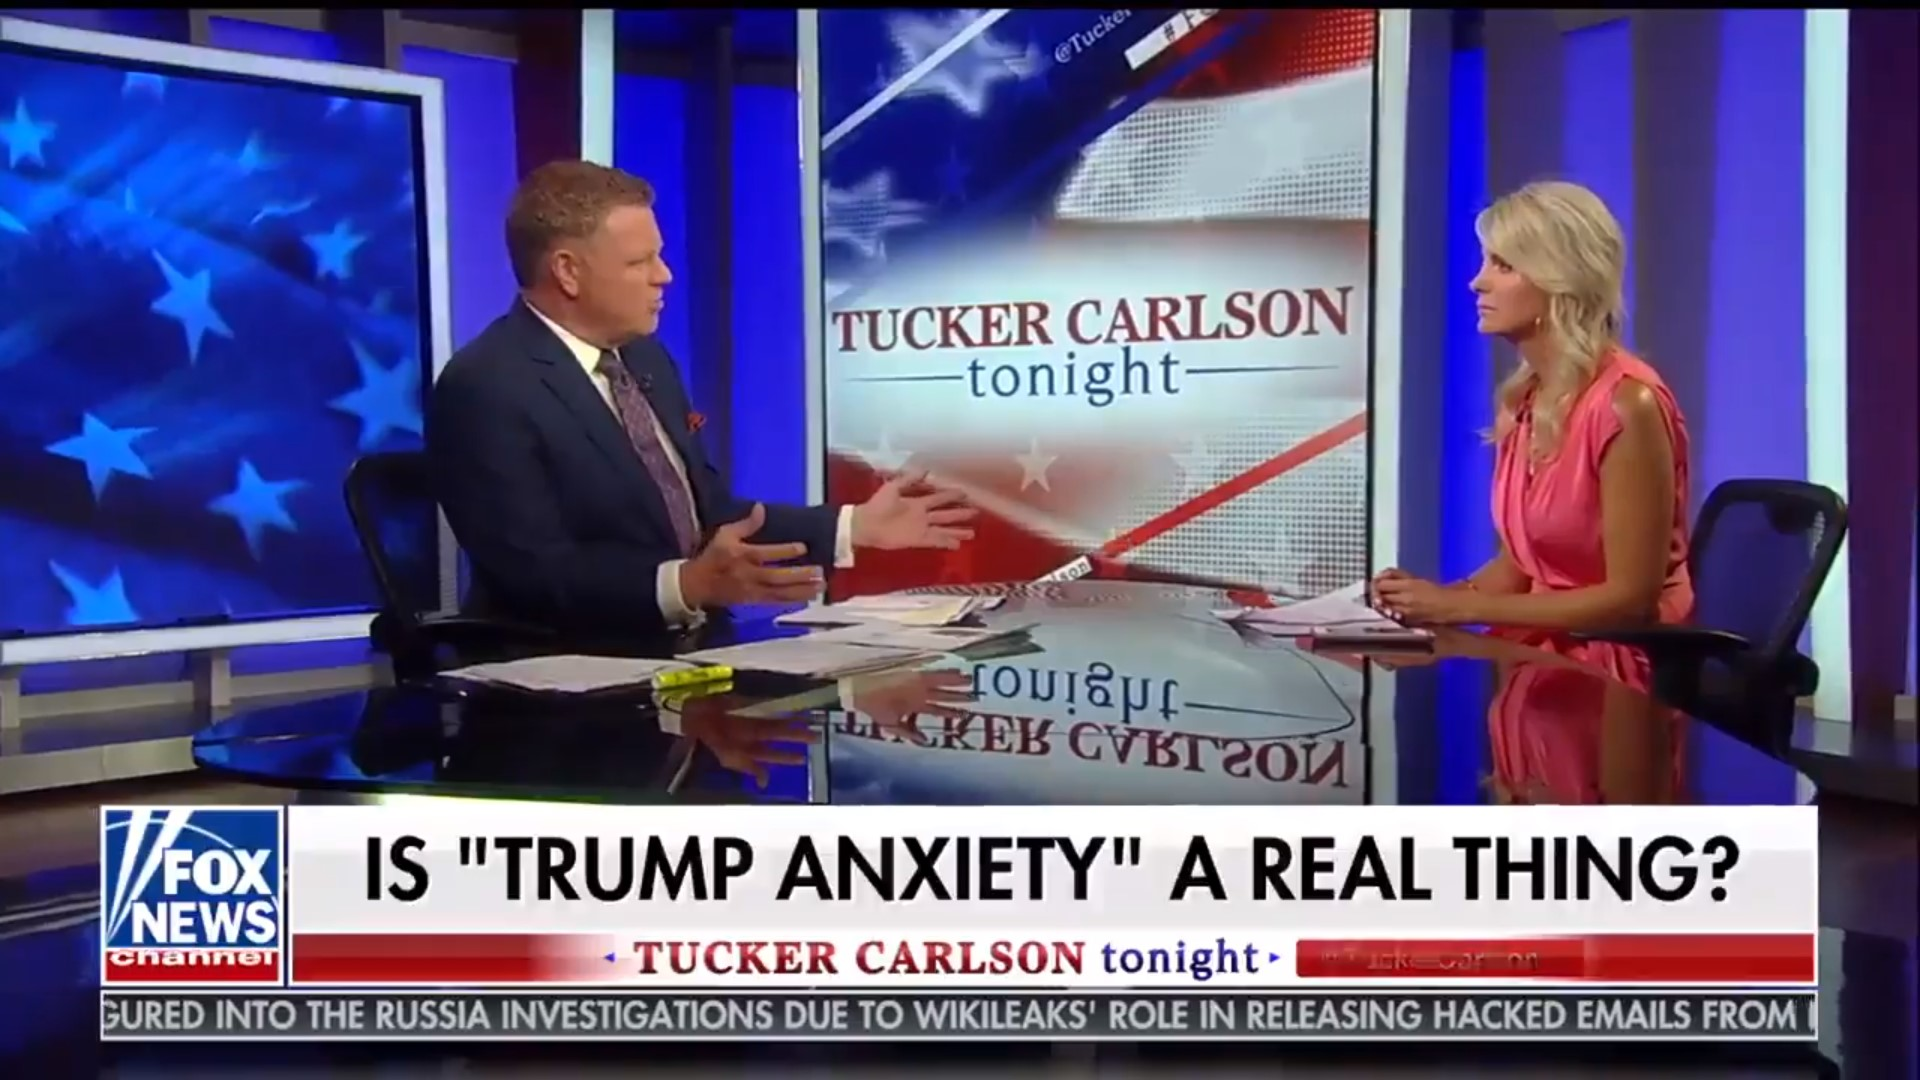 Fox And Friends And Fox's Primetime Shows Virtually Ignore Rep. Chris Collins' Indictment